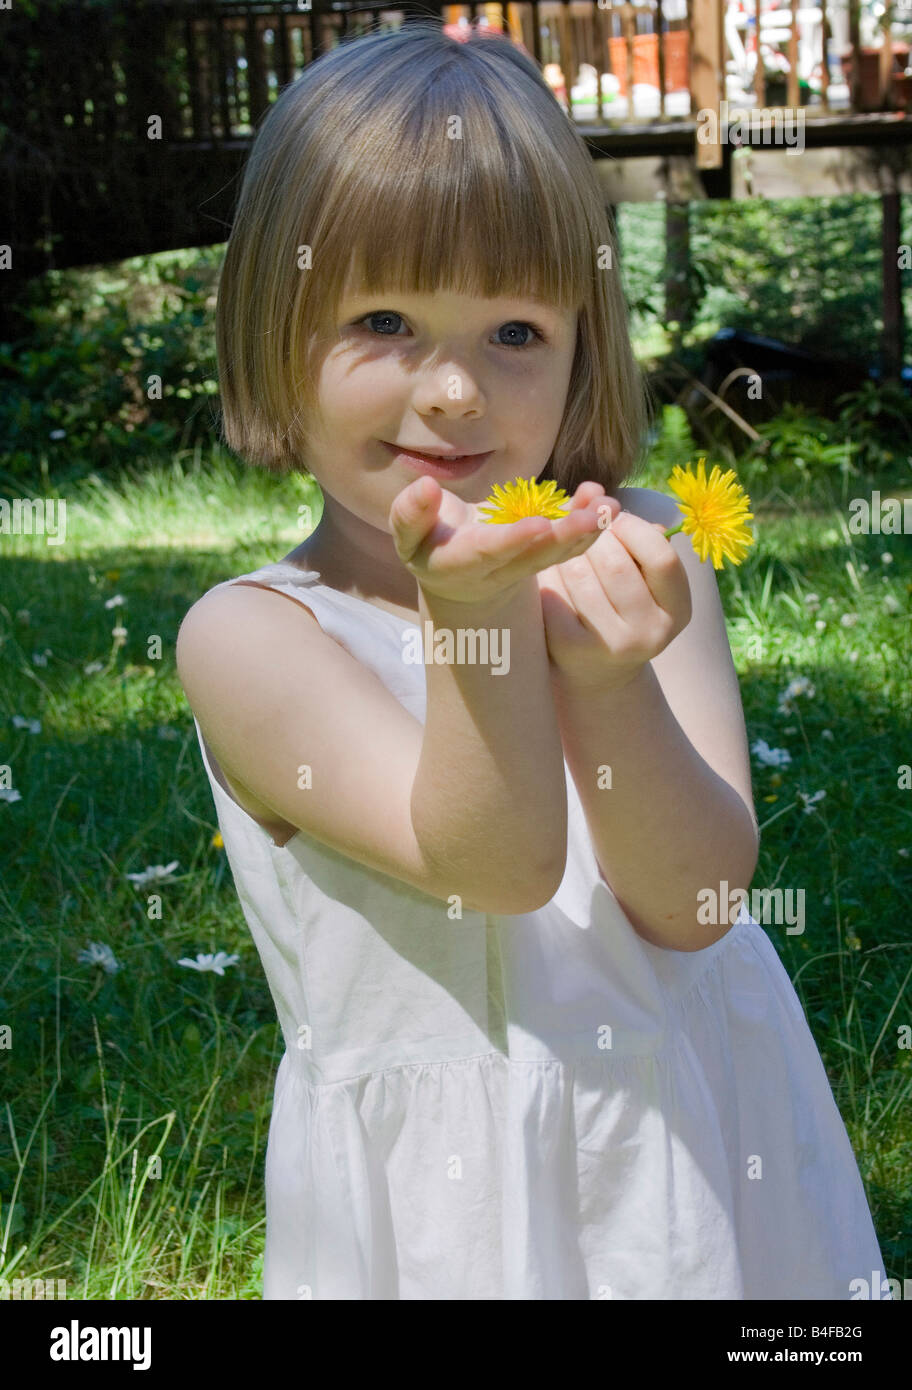 Young Girl In White Dress Summer Or Springtime Giving A Bright